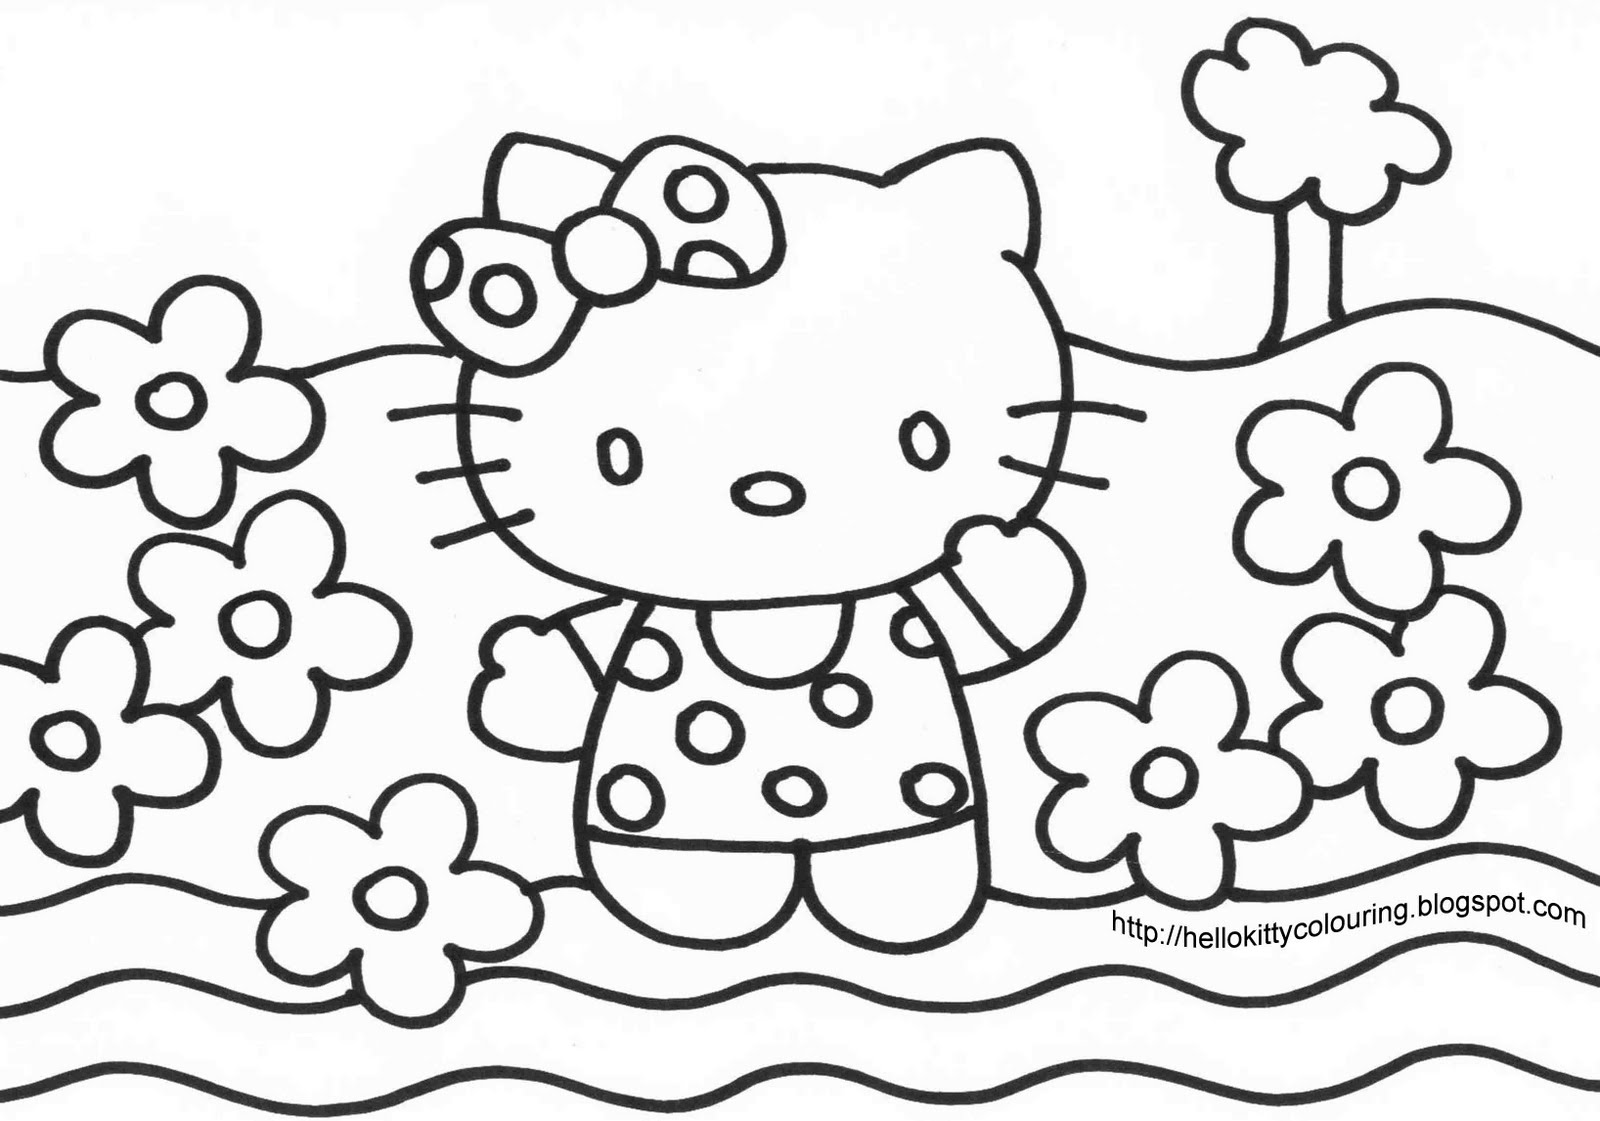 Ausmalbilder Gratis Hello Kitty : Hello Kitty Drawing Images At Getdrawings Com Free For Personal